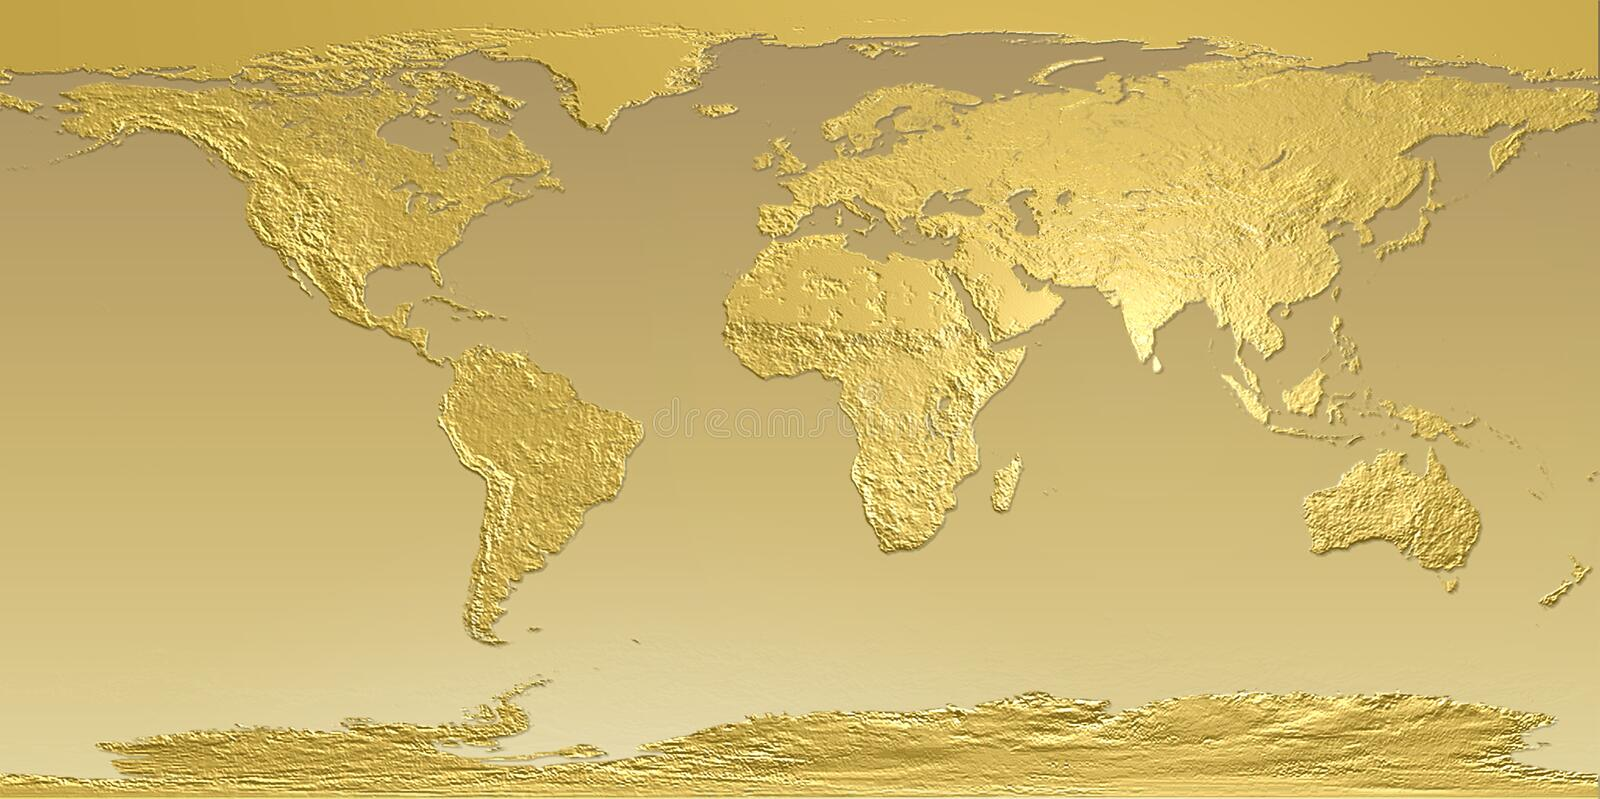 Golden map of Earth stock photo